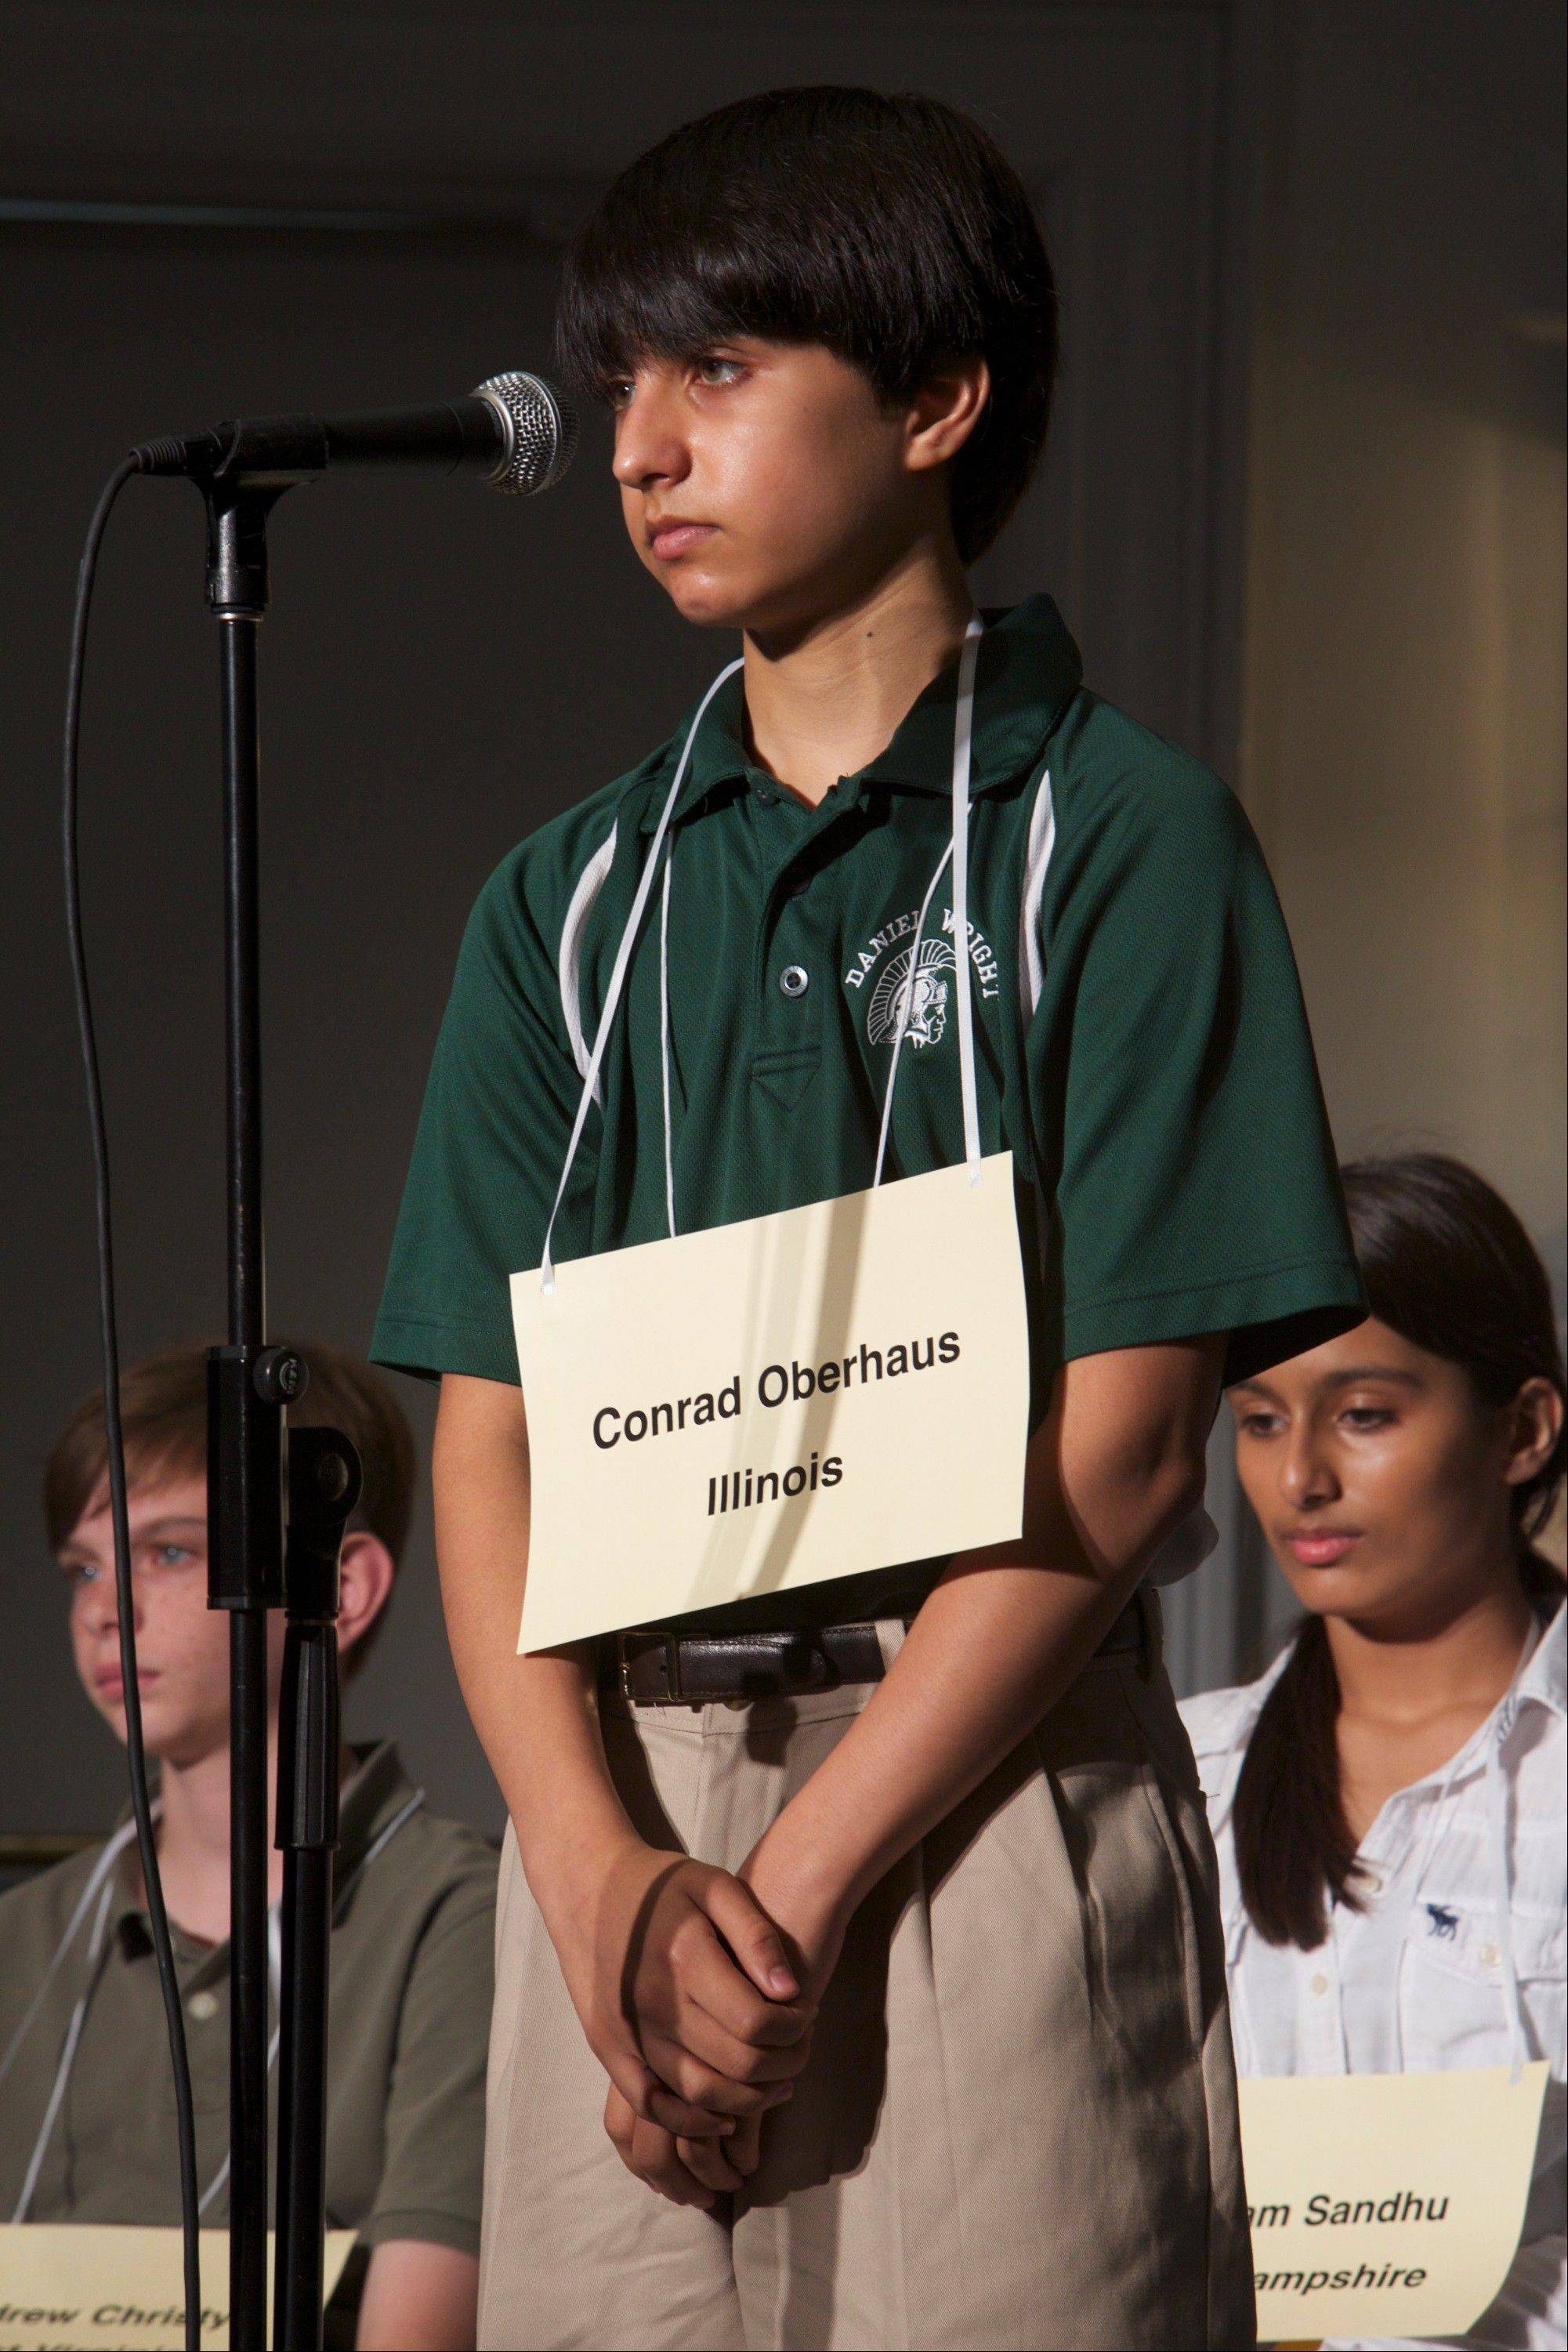 Conrad Oberhaus, a student at Daniel Wright Junior High in Lincolnshire, competes in a preliminary round of the 2013 National Geographic Bee in Washington. He finished second in the whole country in the end.